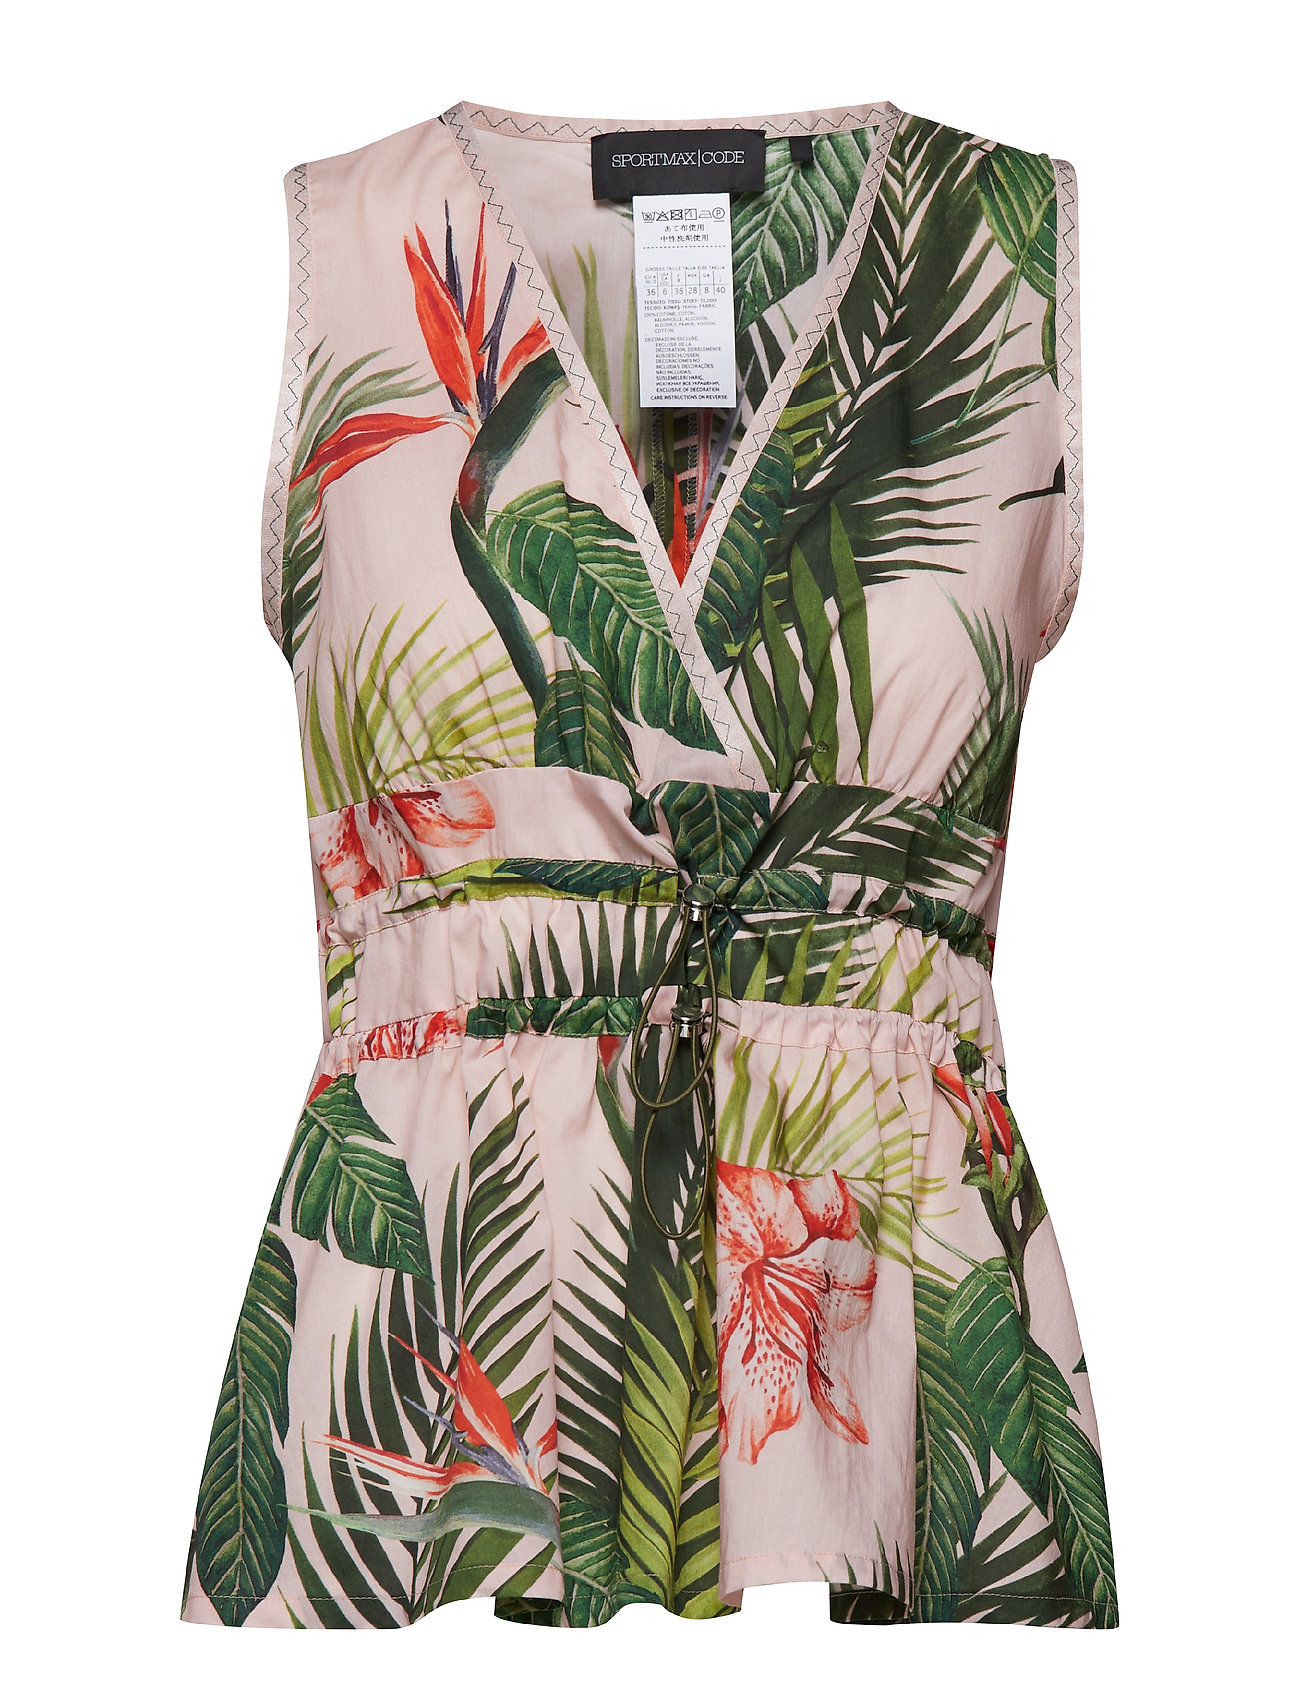 Sportmax Code REMO - PINK PALM TREES/IBISCUS PR. TOP